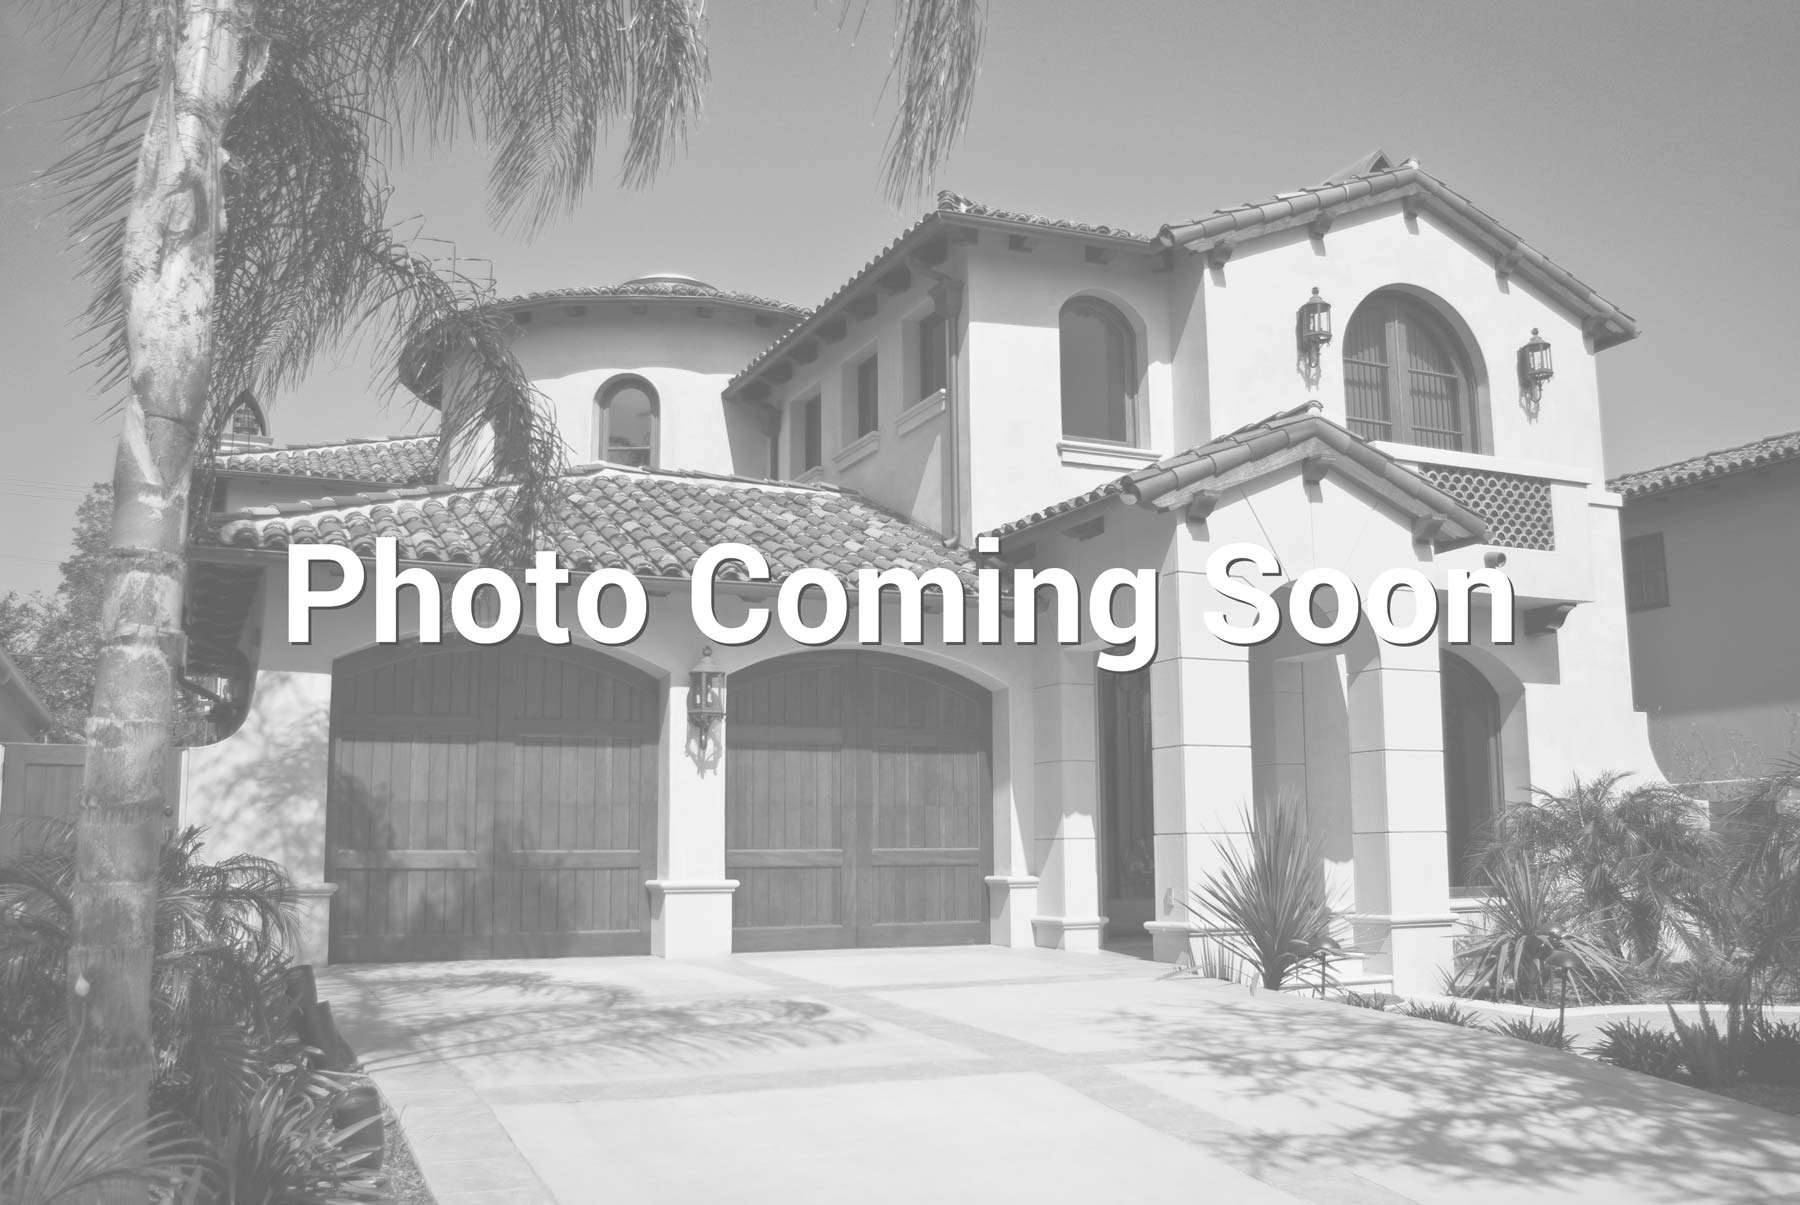 $2,150,000 - 5Br/5Ba - Home for Sale in George Portnoff Estates Lot 18a & 18b Lt 18a 18b, Paradise Valley